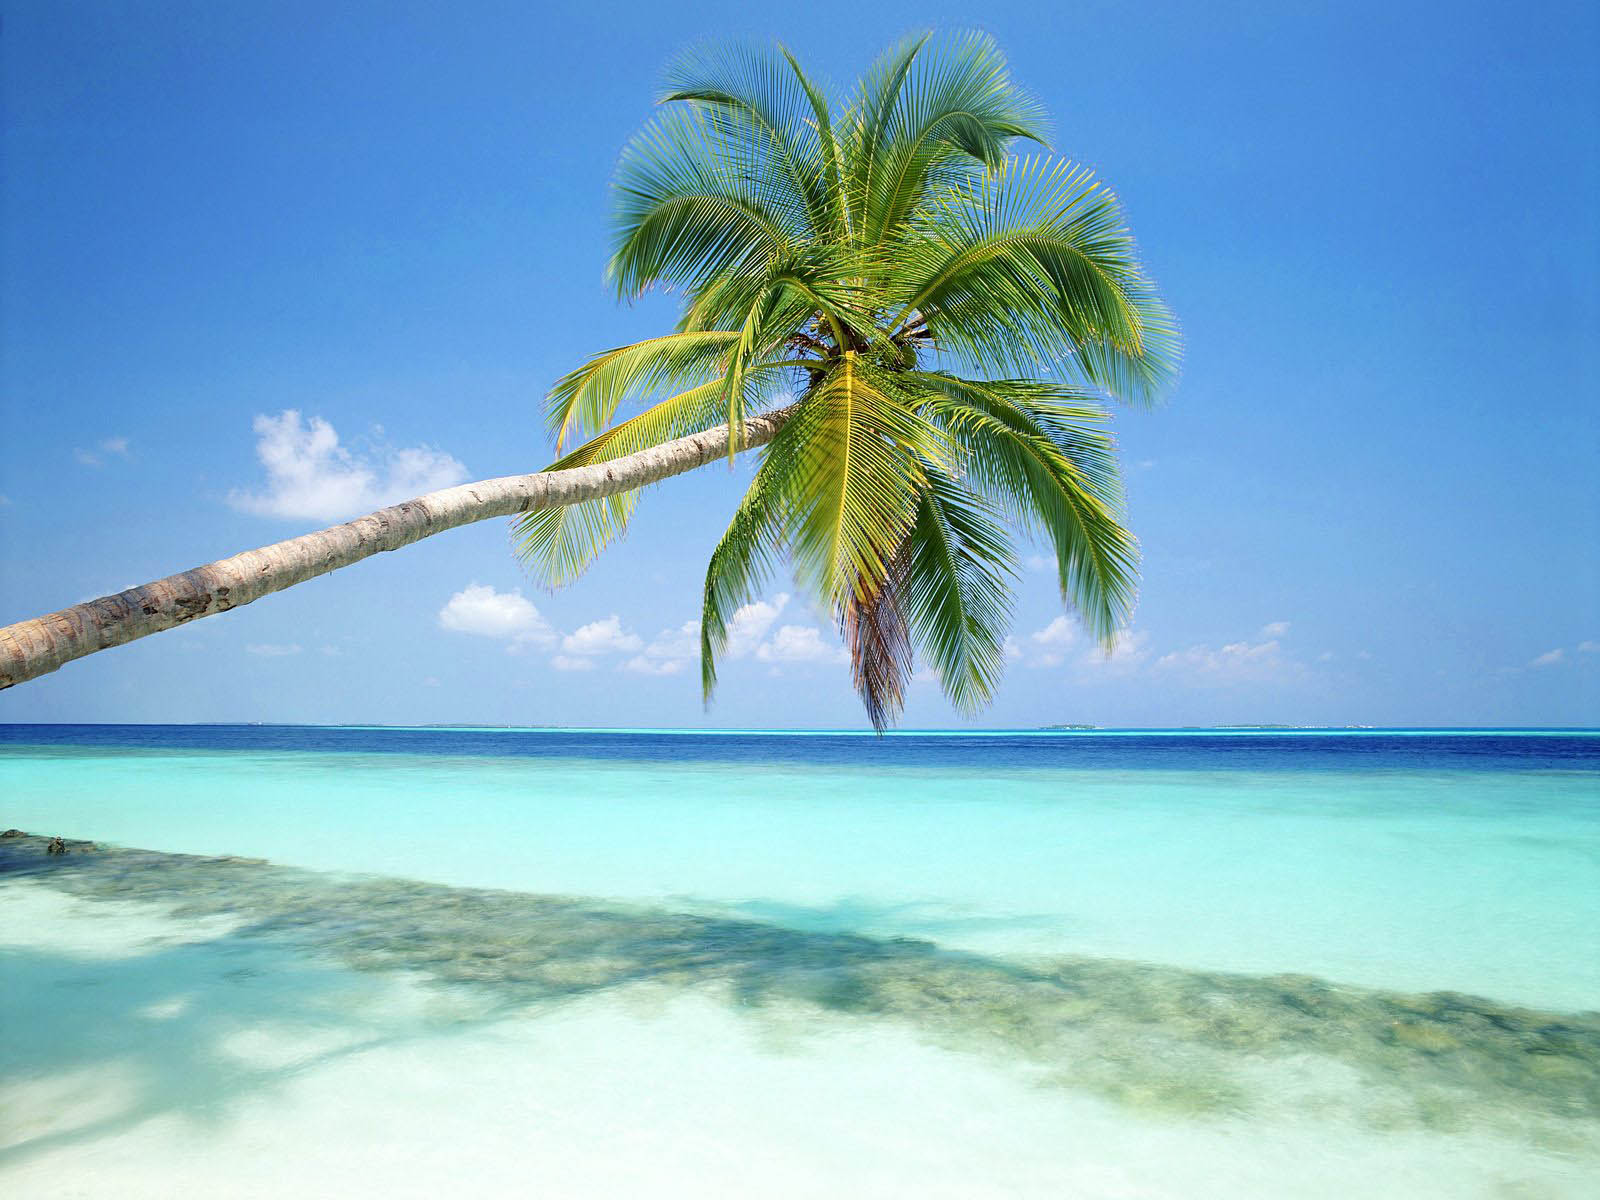 Tag Beach Wallpapers Backgrounds Photos Picturesand Images for 1600x1200